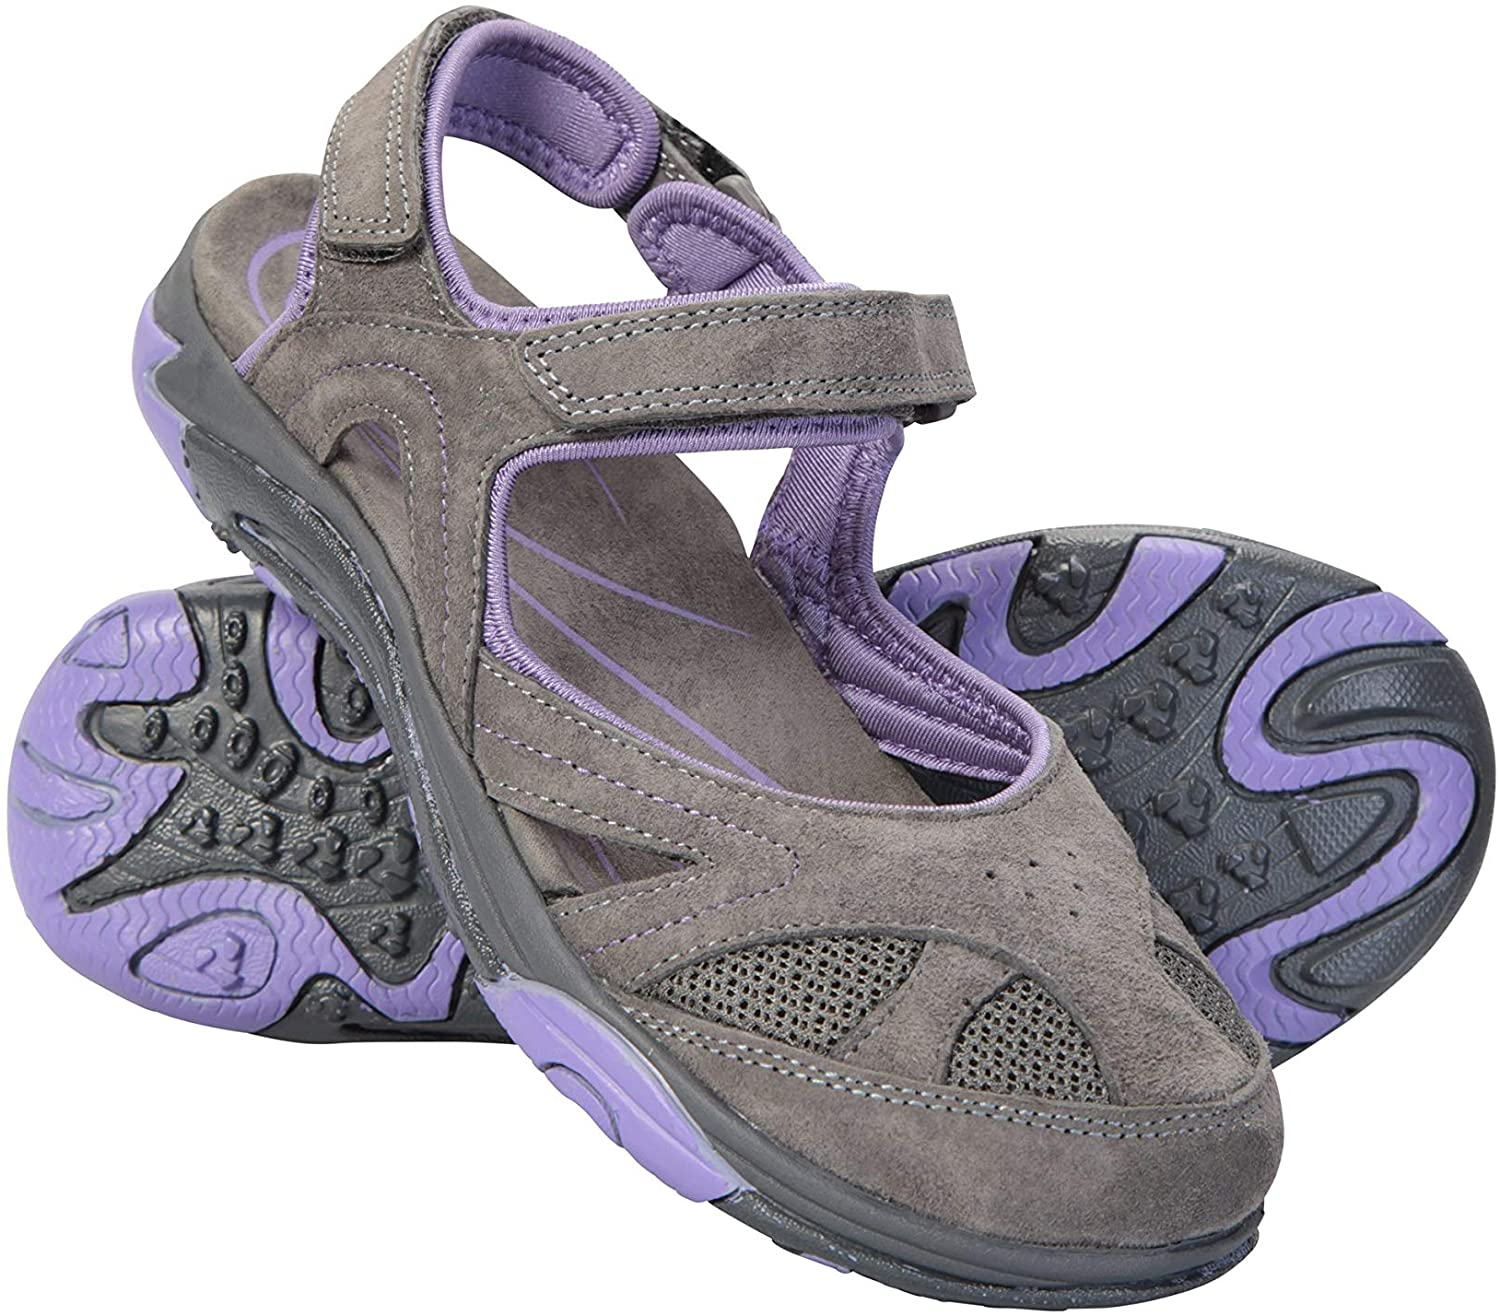 Mountain Warehouse Bournemouth Womens Covered Sandals - for Summer Dark Purple Womens Shoe Size 6 US